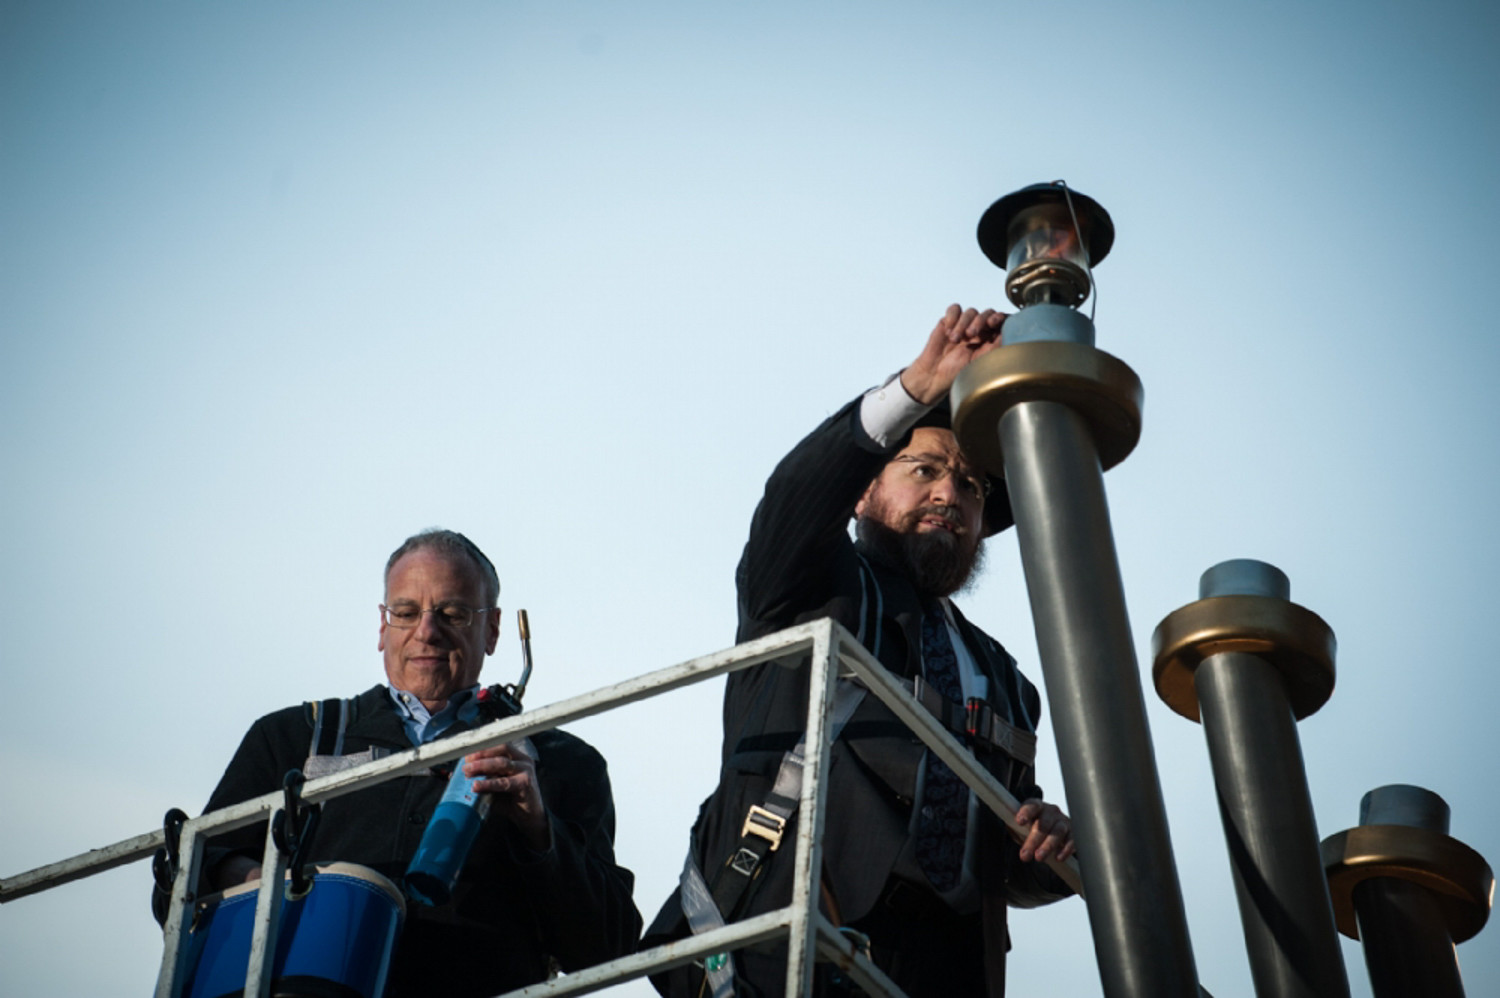 Standing with Assemblyman Jeffrey Dinowitz, Rabbi Levi Shemtov lights the menorah last year to help kick off annual Hanukkah celebrations. The lighting this year takes place Dec. 17 at 4 p.m., at the Riverdale Monument.